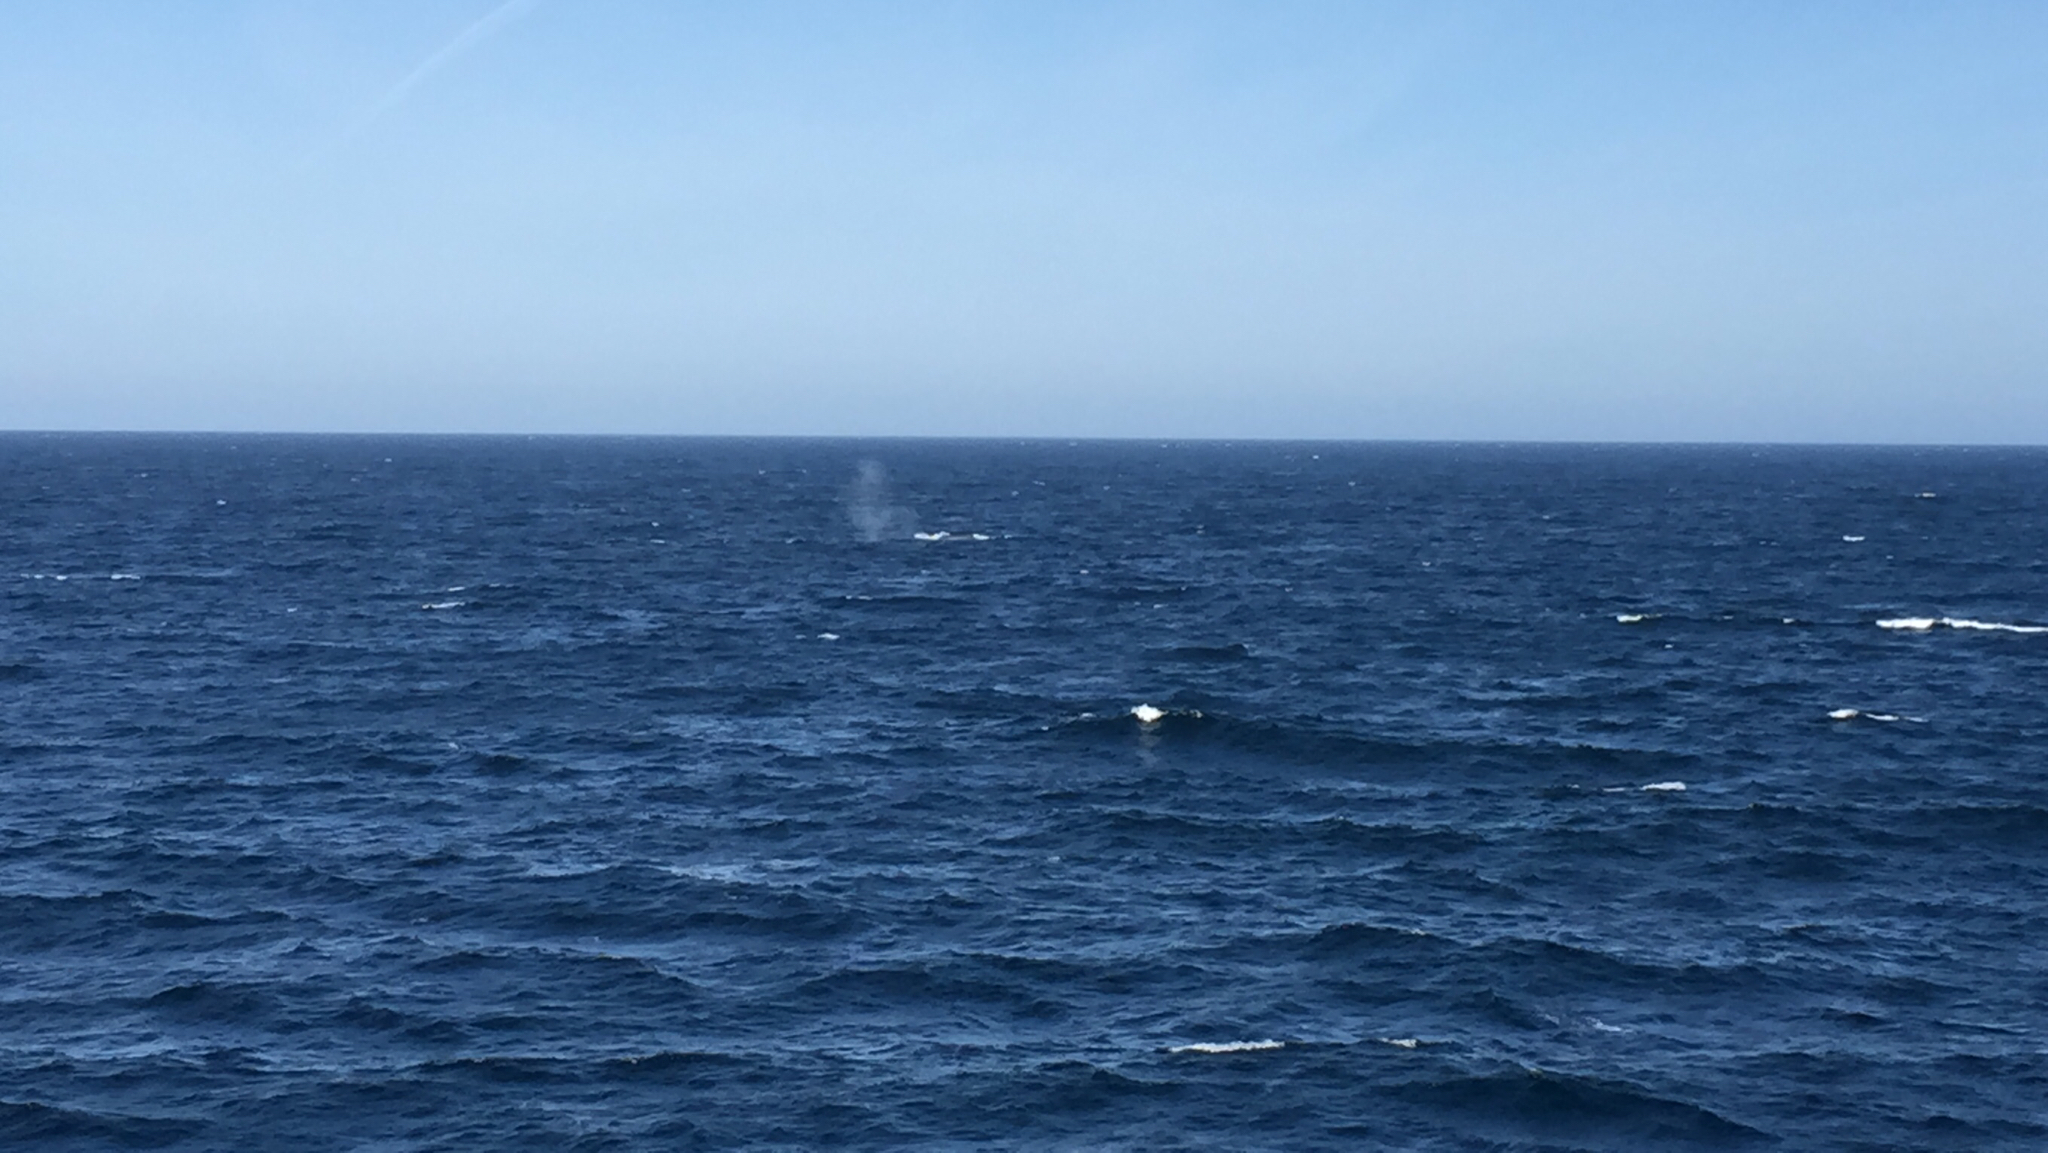 Image of Blue whale